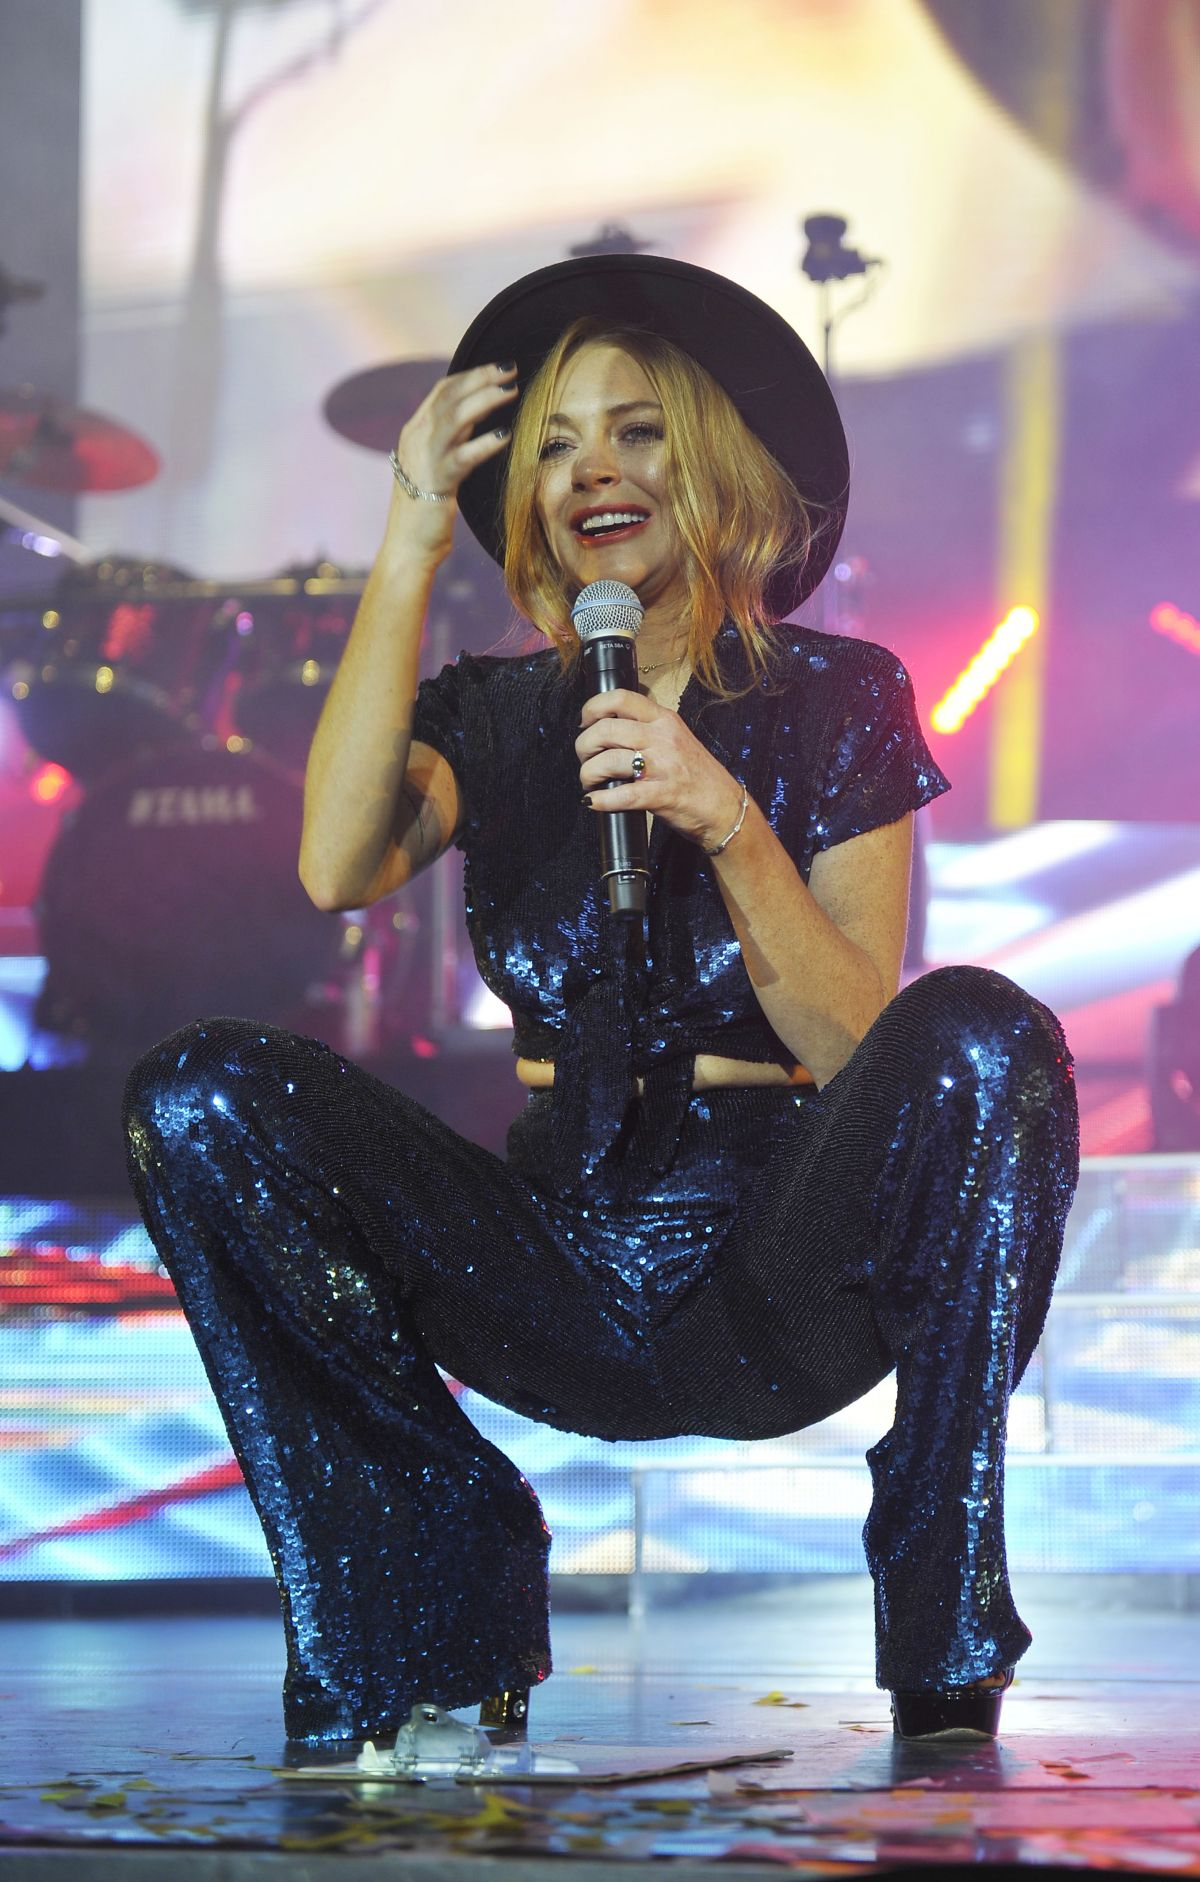 LINDSAY LOHAN Performs at O2 Arena in London 12/08/2015